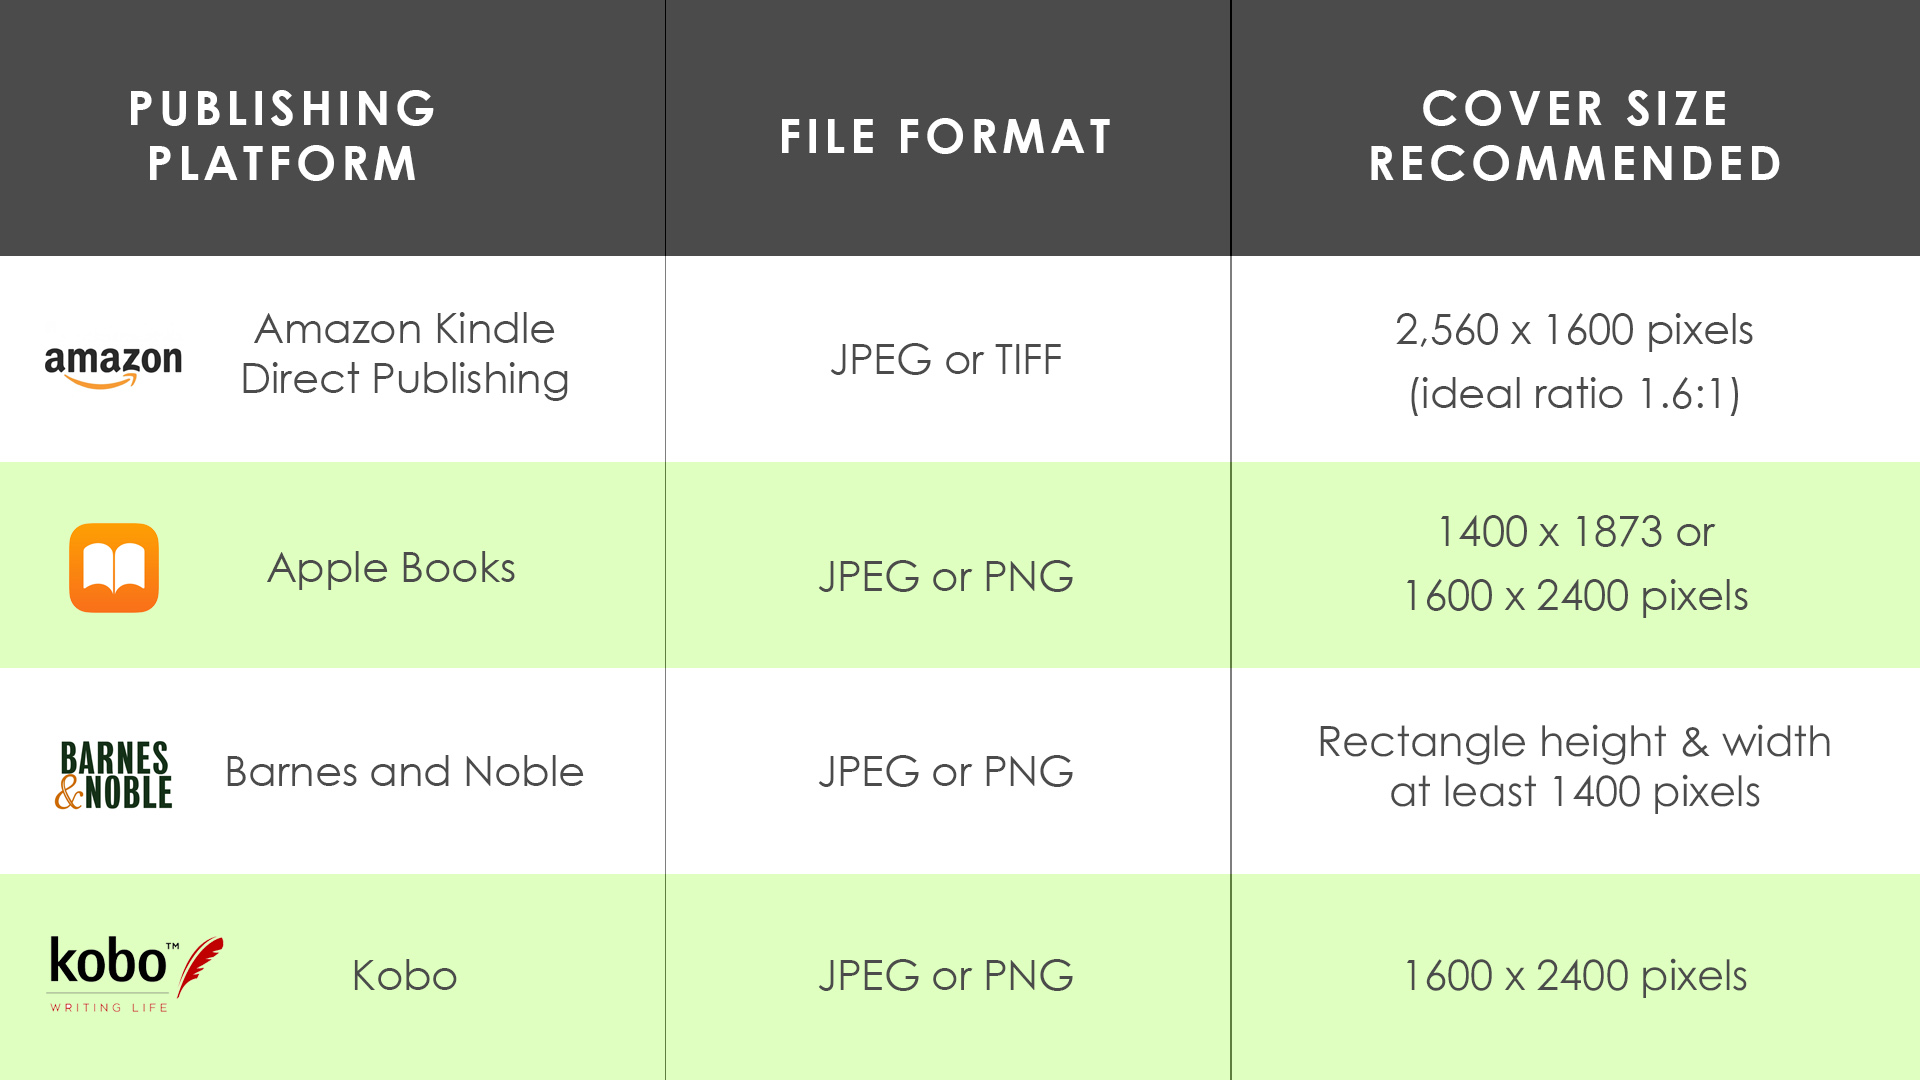 Table on file formatting and publishing platforms